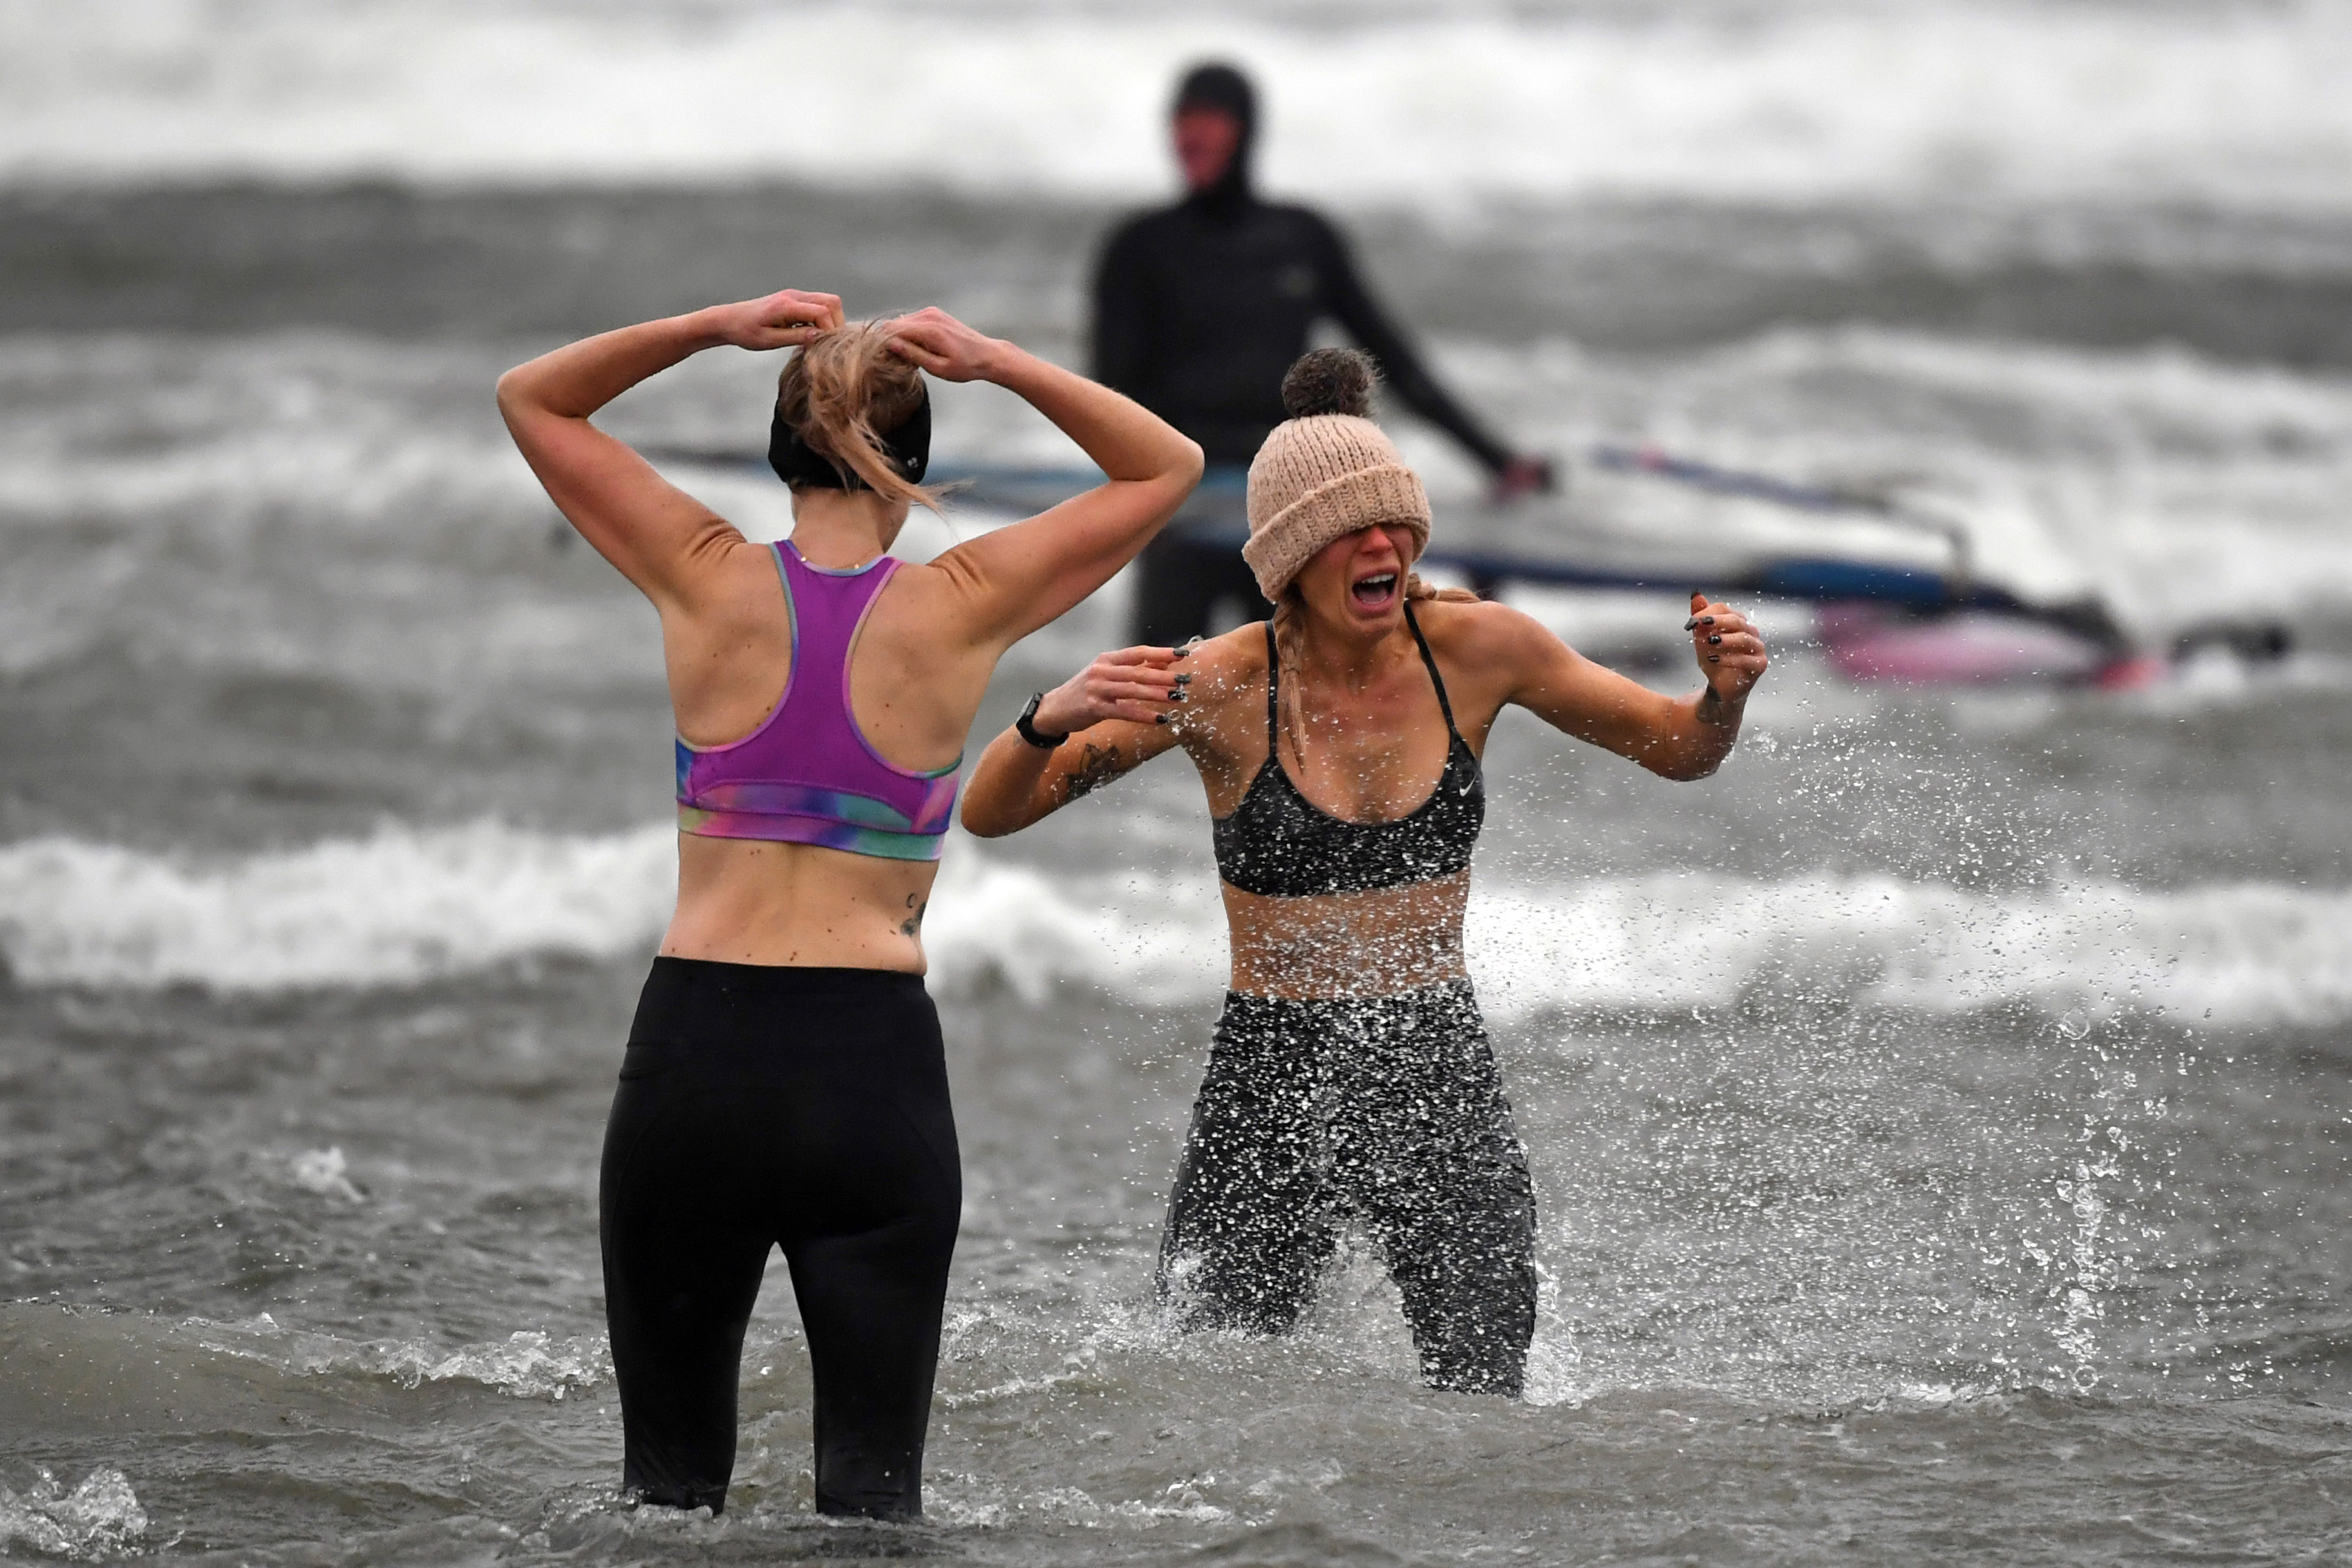 Members of the public take to the water at Barassie Beach in Troon, on the west coast of Scotland on Boxing Day, December 26, 2020 as Storm Bella brings rain and high winds to the UK. (Photo by Andy Buchanan / AFP) (Photo by ANDY BUCHANAN/AFP via Getty Images)